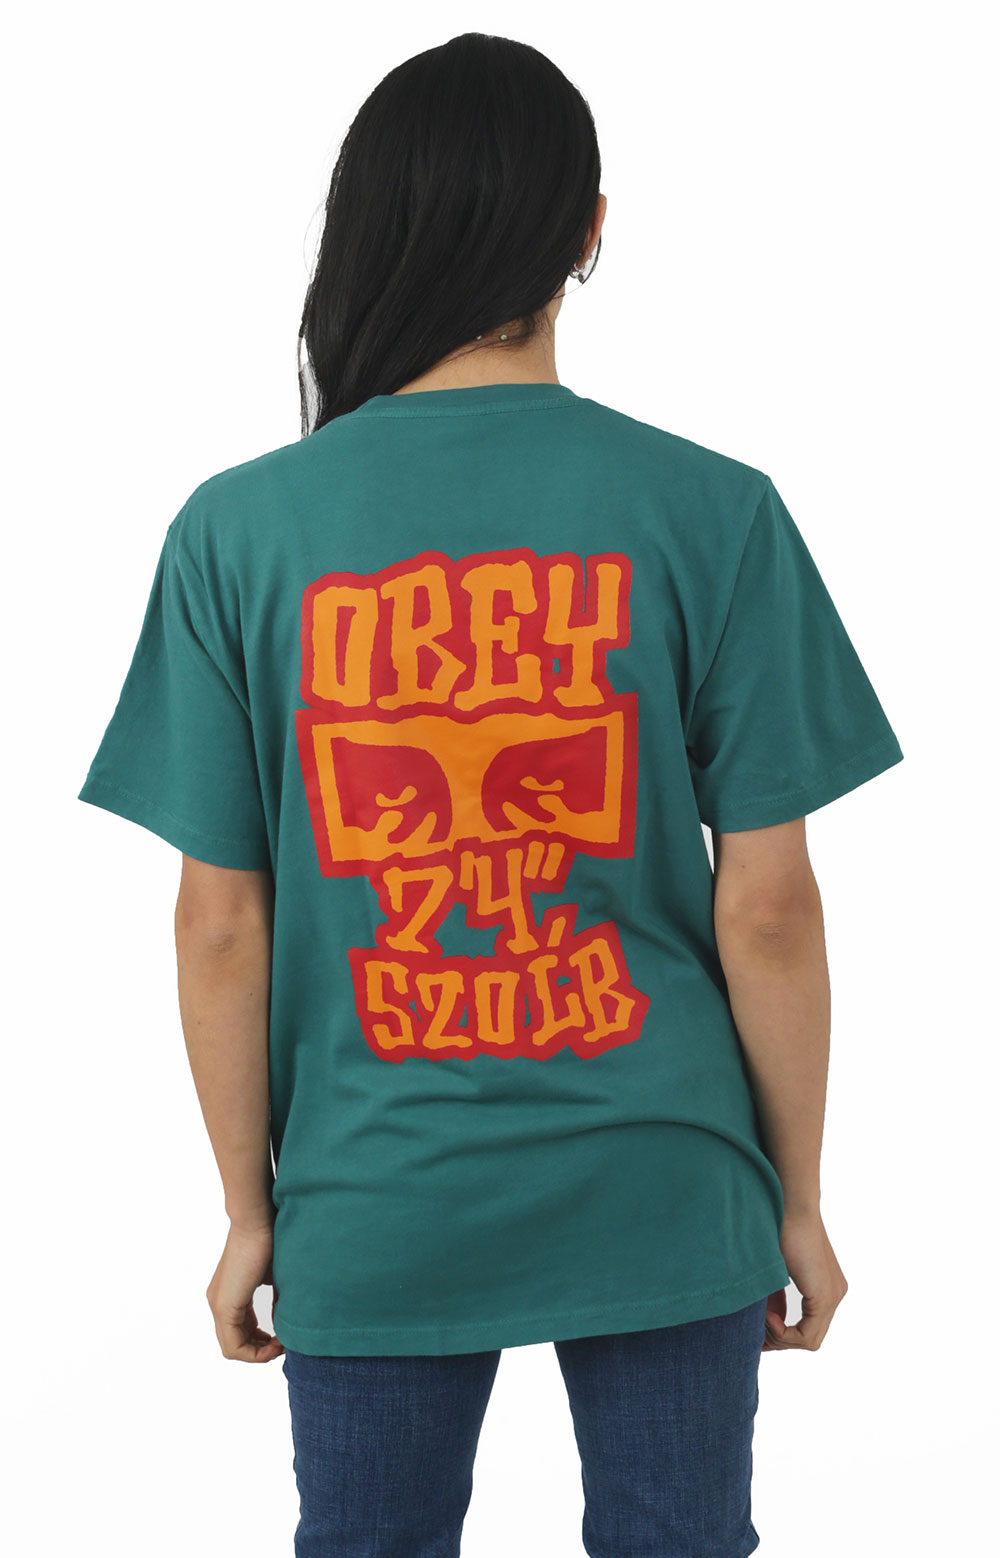 Seven Four T-Shirt - Teal Green